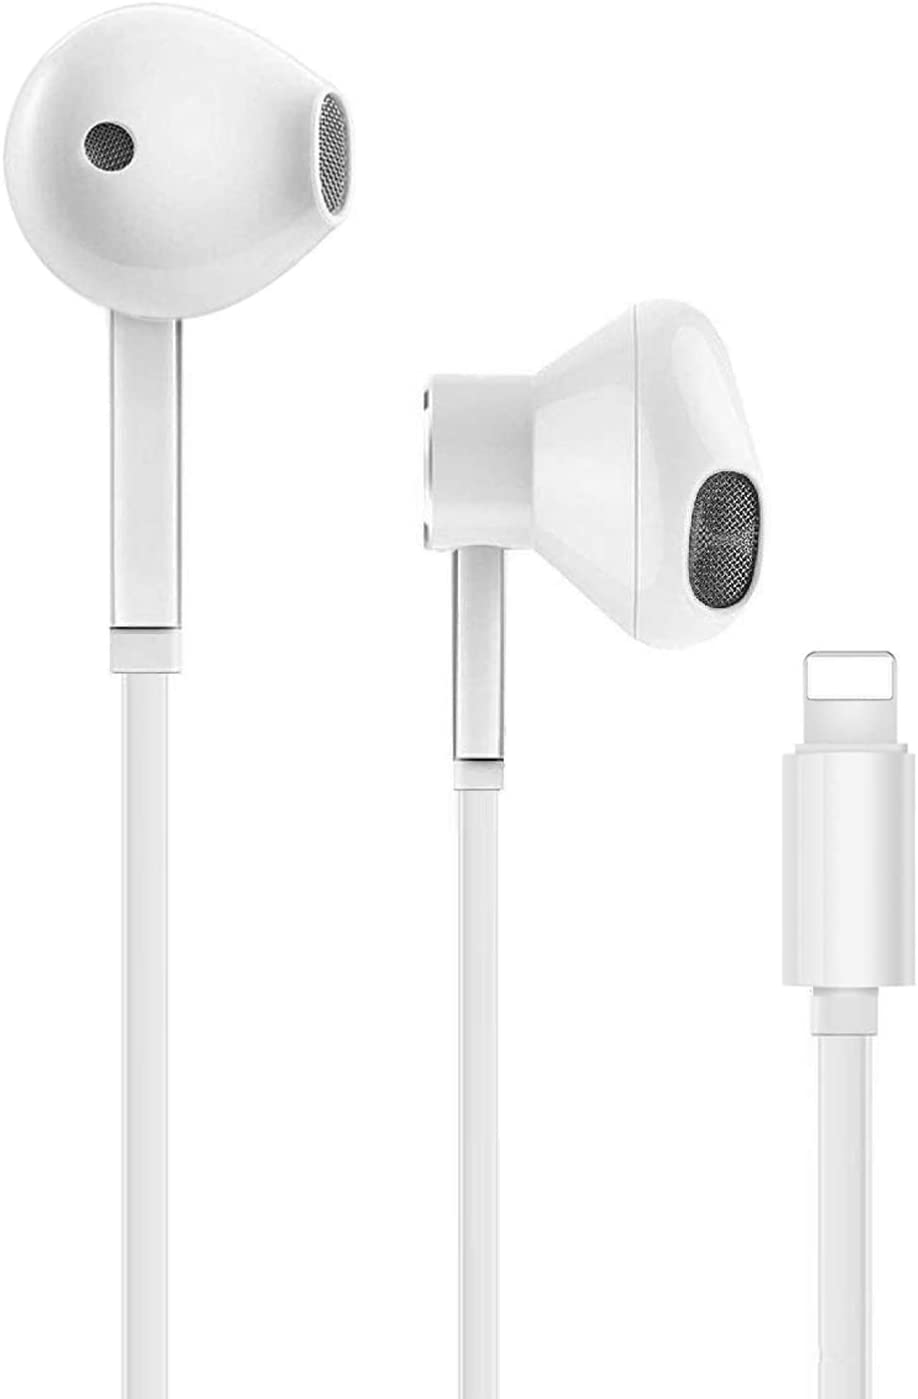 Earbuds with Lightning Connector, MFi Certified Wired In-Ear Headphones HiFi Audio Stereo Earphones, With Microphone and Volume Control, Compatible With iPhone7/7Plus/8/8Plus/X/XSMax /11/11Pro - White